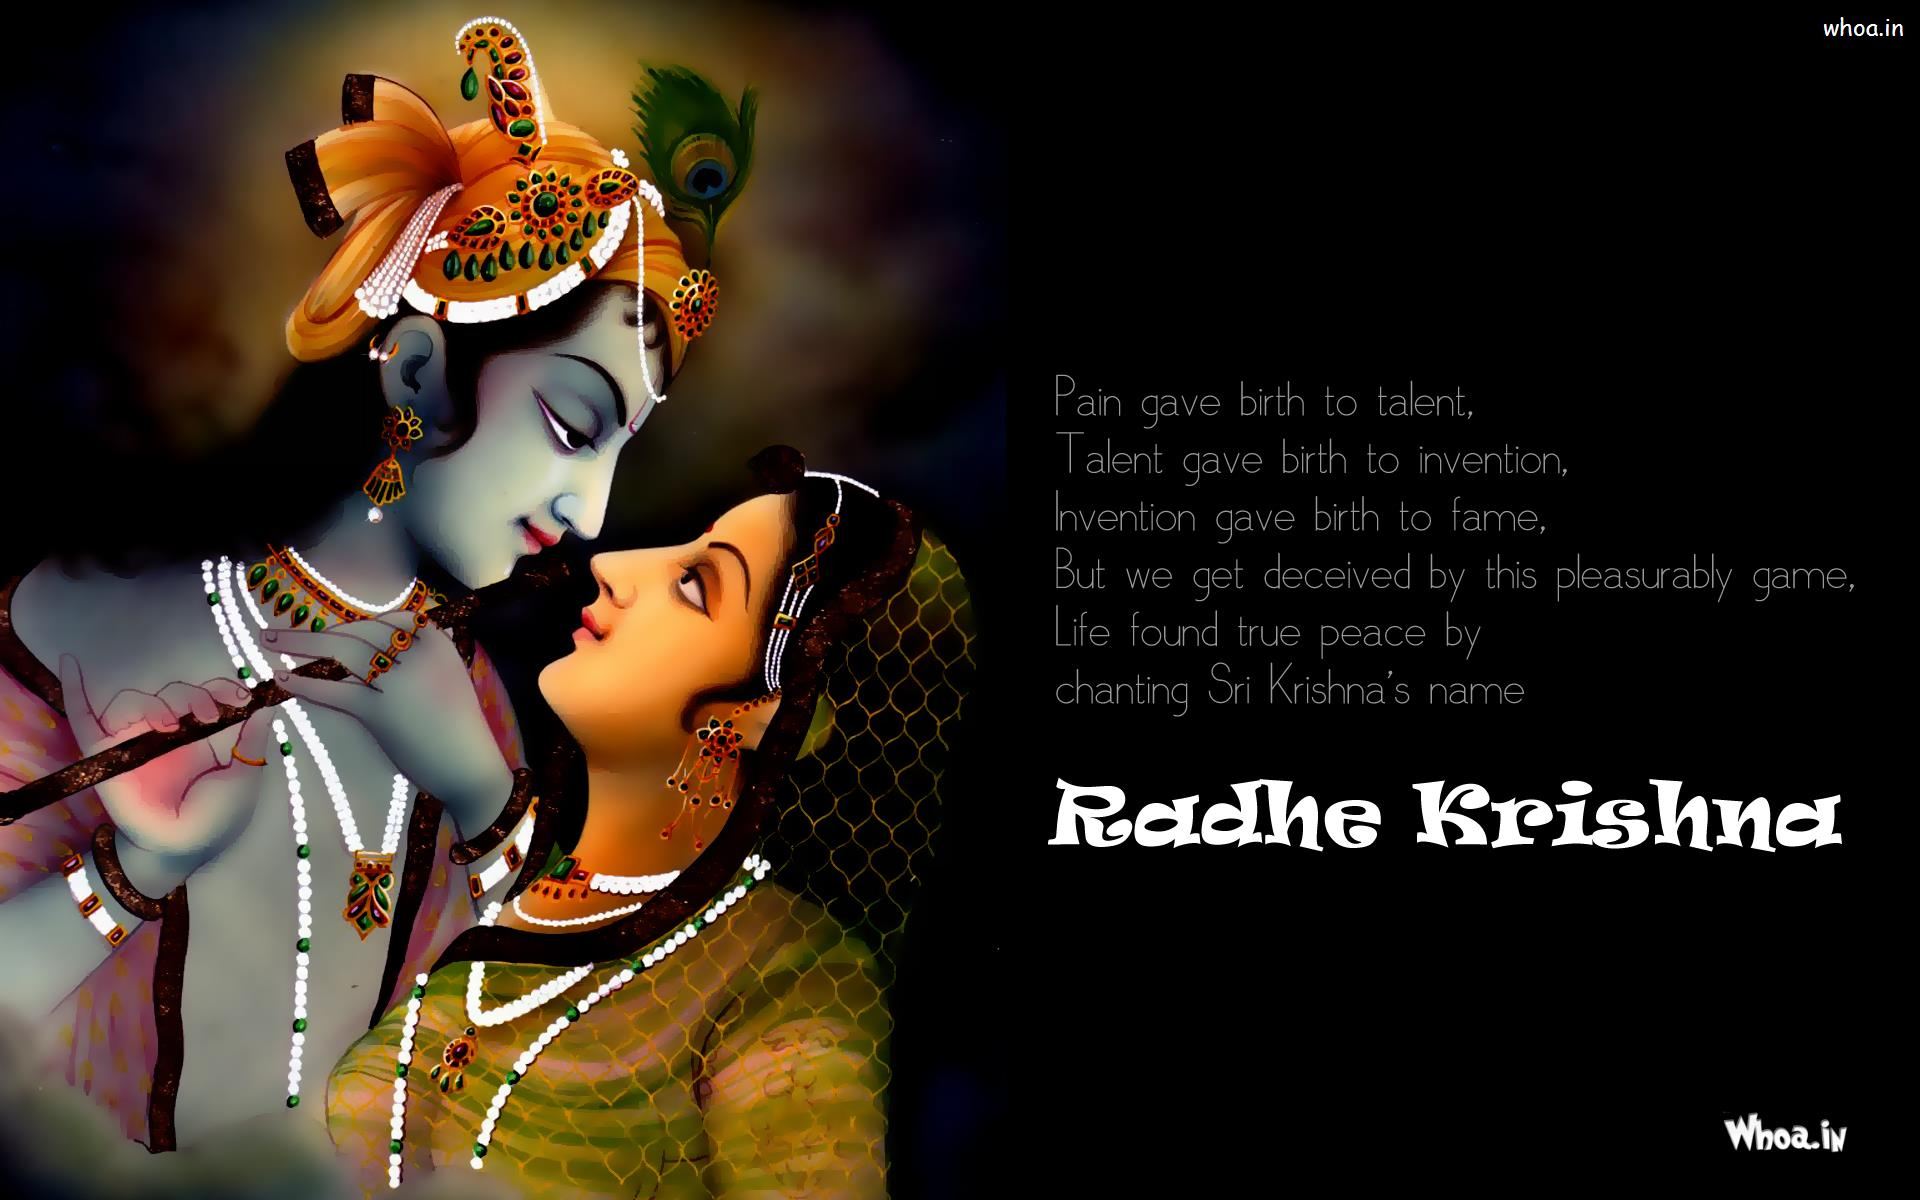 Wallpaper download krishna - Radhe Krishna Wallpapers With Quote 2